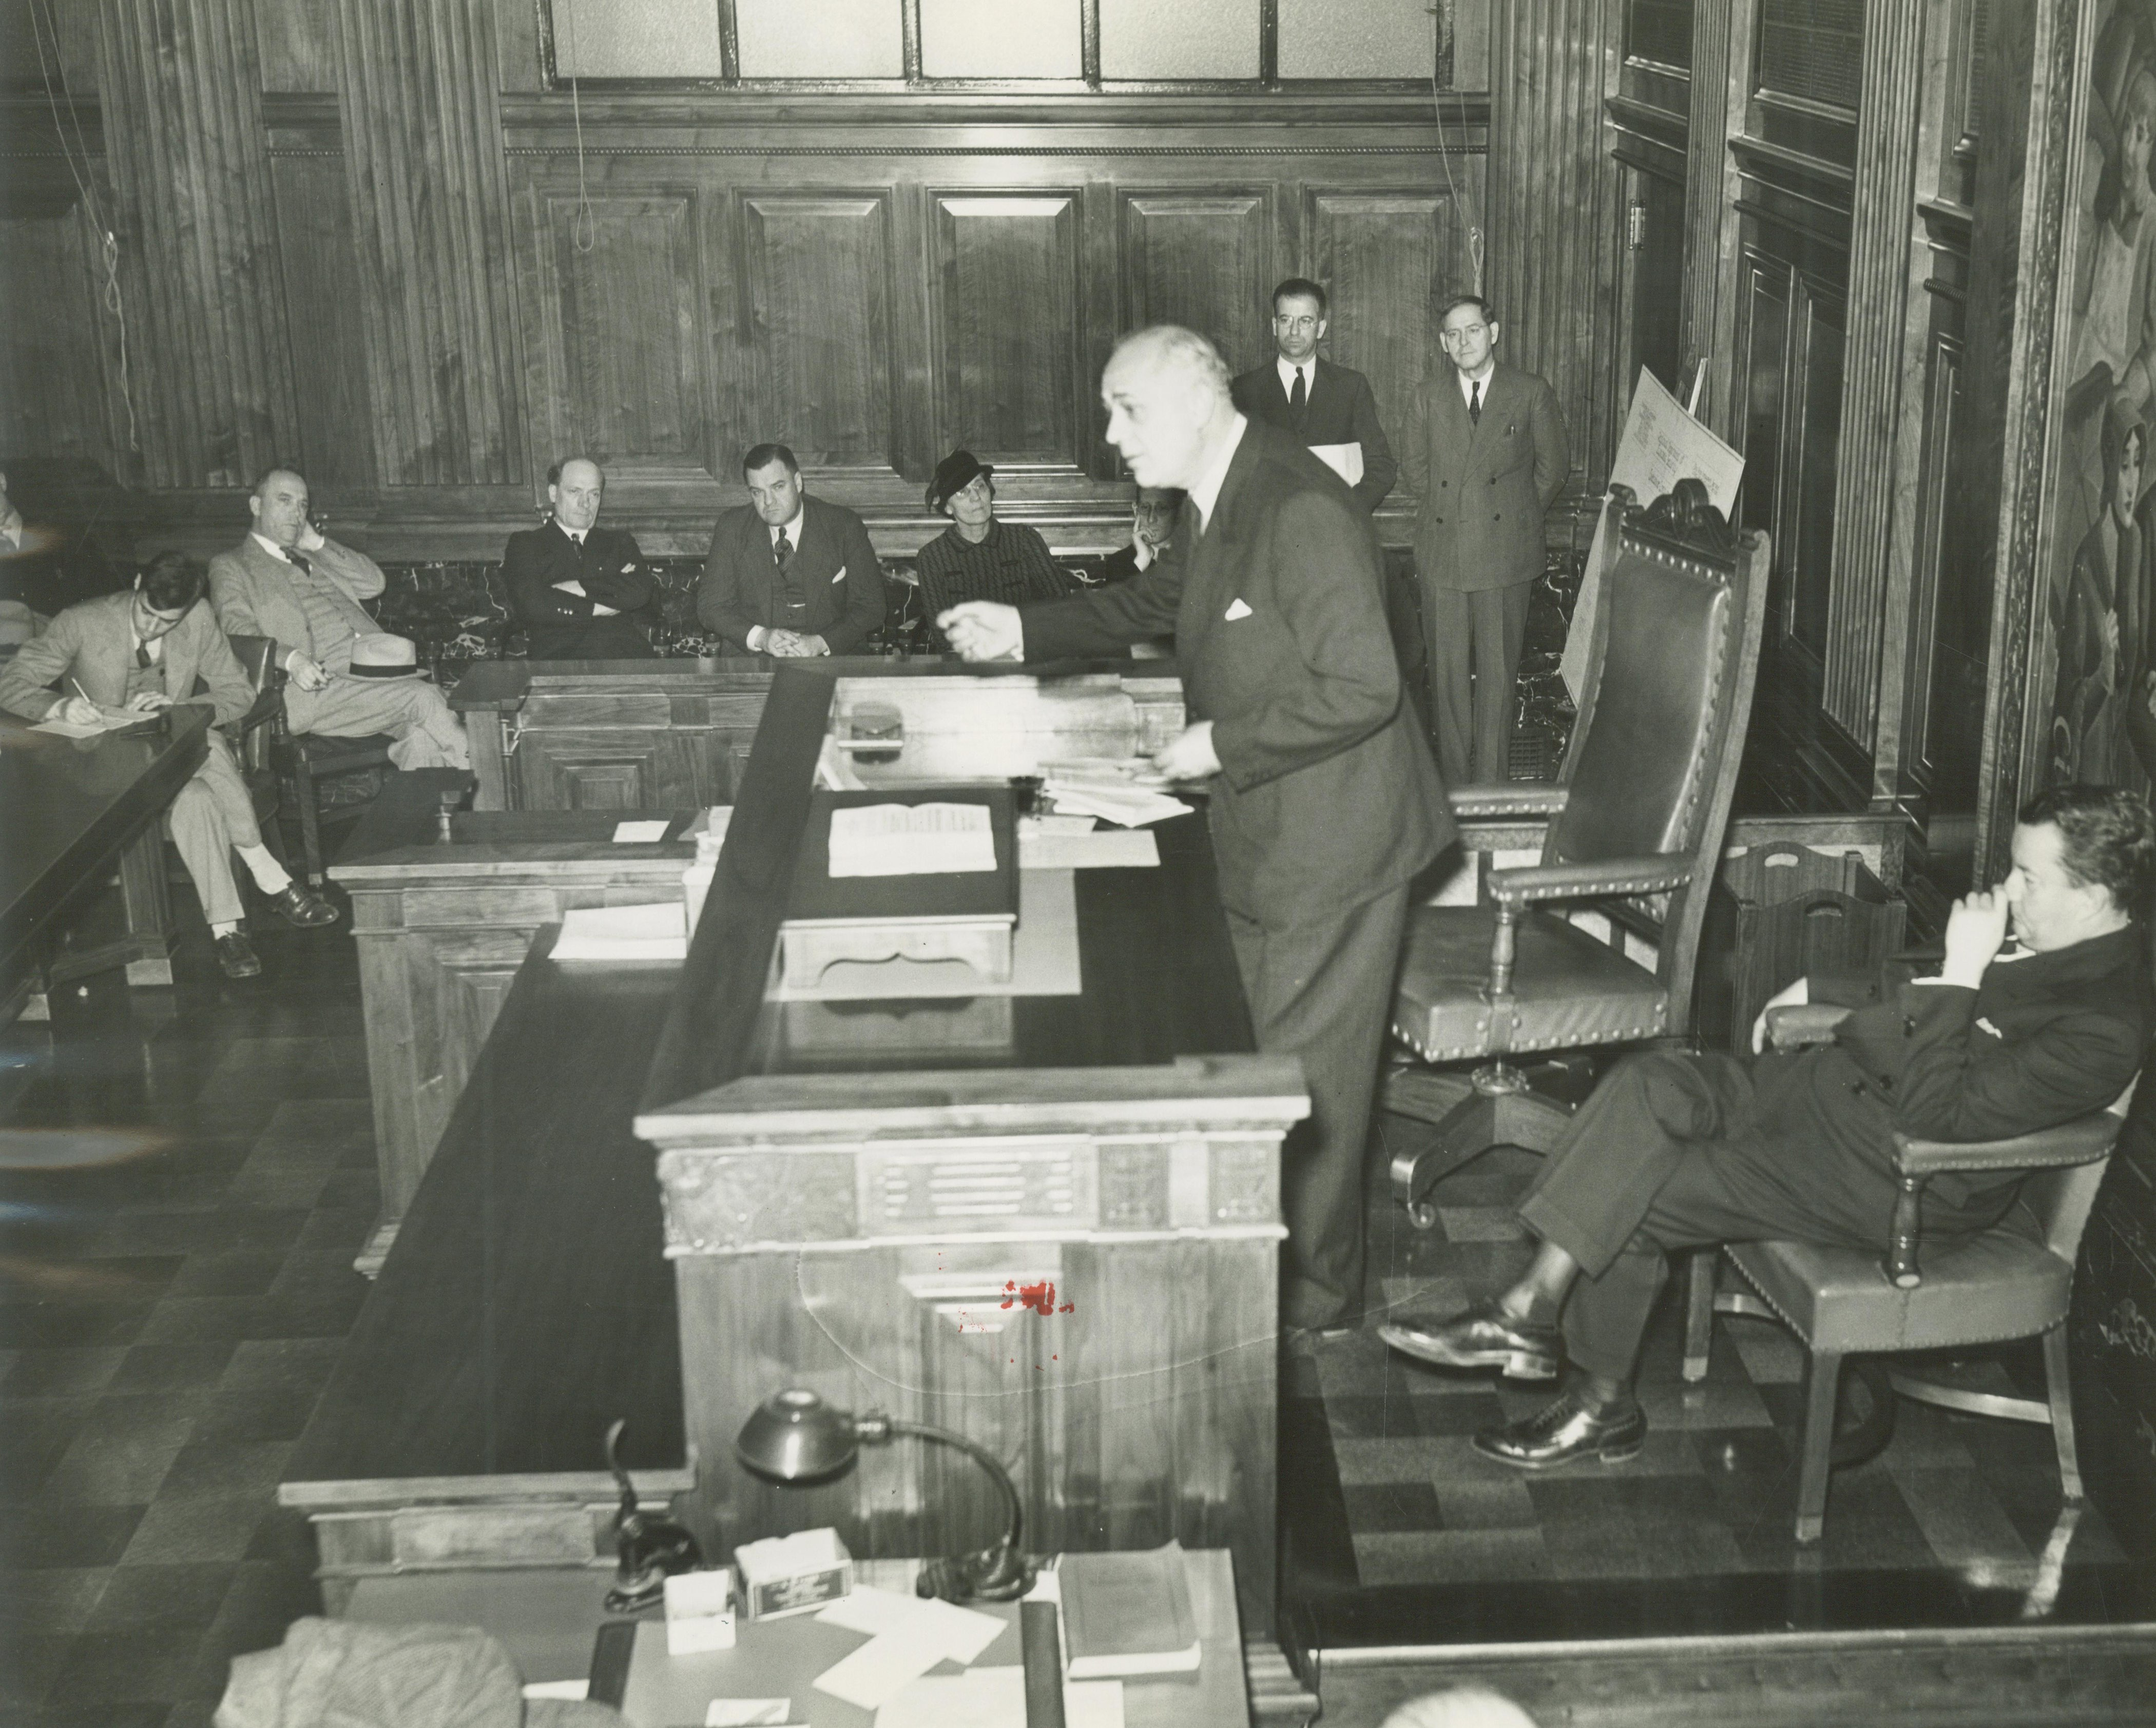 <table class=&quot;lightbox&quot;><tr><td colspan=2 class=&quot;lightbox-title&quot;>Judge Giving a Speech</td></tr><tr><td colspan=2 class=&quot;lightbox-caption&quot;>A Milwaukee judge gives a speech from behind a desk to a room of men and women. </td></tr><tr><td colspan=2 class=&quot;lightbox-spacer&quot;></td></tr><tr class=&quot;lightbox-detail&quot;><td class=&quot;cell-title&quot;>Source: </td><td class=&quot;cell-value&quot;>From the Historic Photo Collection of the Milwaukee Public Library. Reprinted with permission.<br /><a href=&quot;http://content.mpl.org/cdm/singleitem/collection/HstoricPho/id/4365/rec/7&quot; target=&quot;_blank&quot;>Milwaukee Public Library</a></td></tr><tr class=&quot;filler-row&quot;><td colspan=2>&nbsp;</td></tr></table>